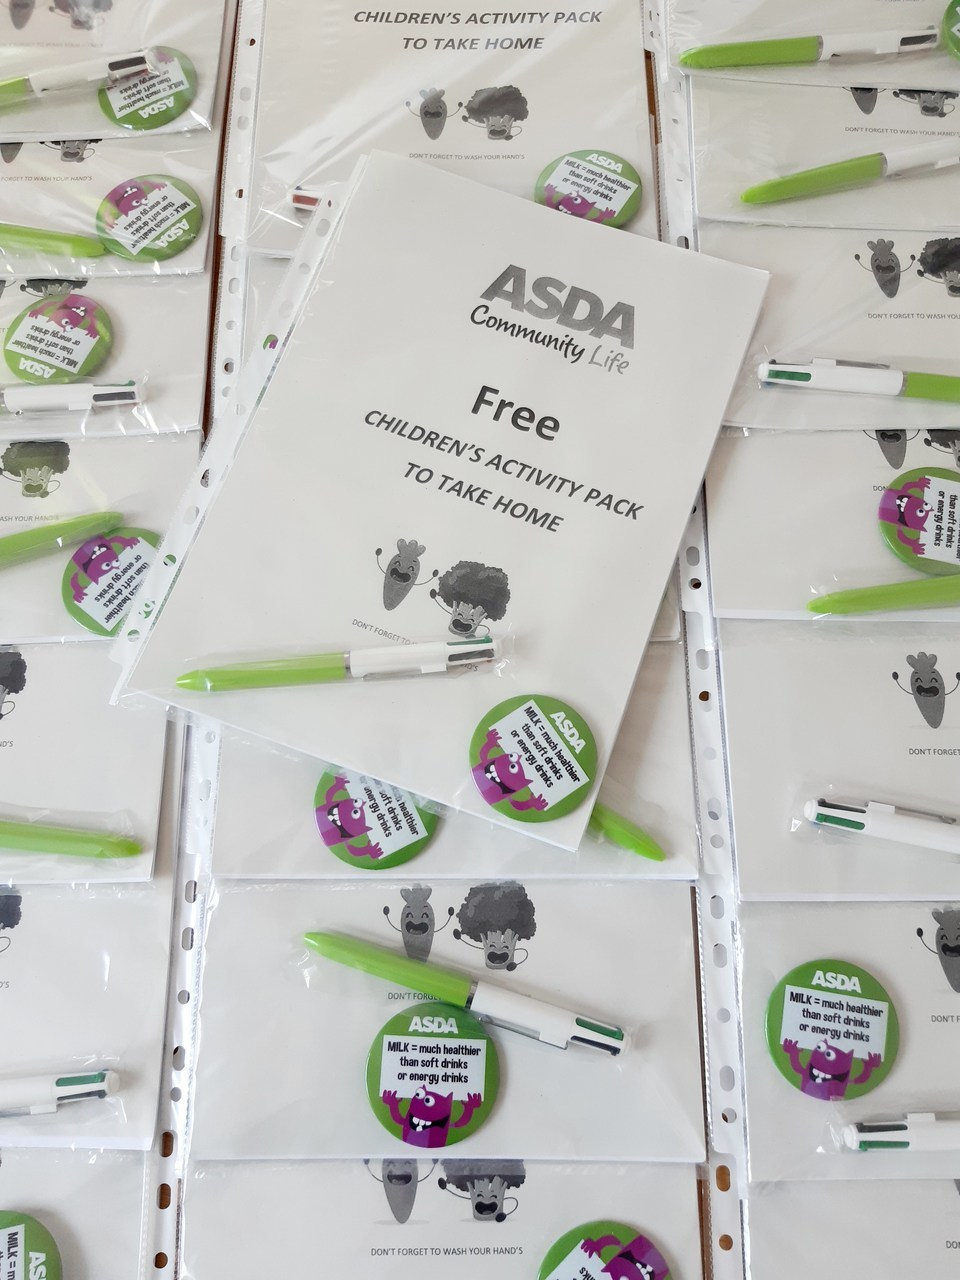 Yesterday I made up some free activity packs for the children to take home 🤗 theres lots of lovely recipes ideas inside 😍  | Asda Norwich